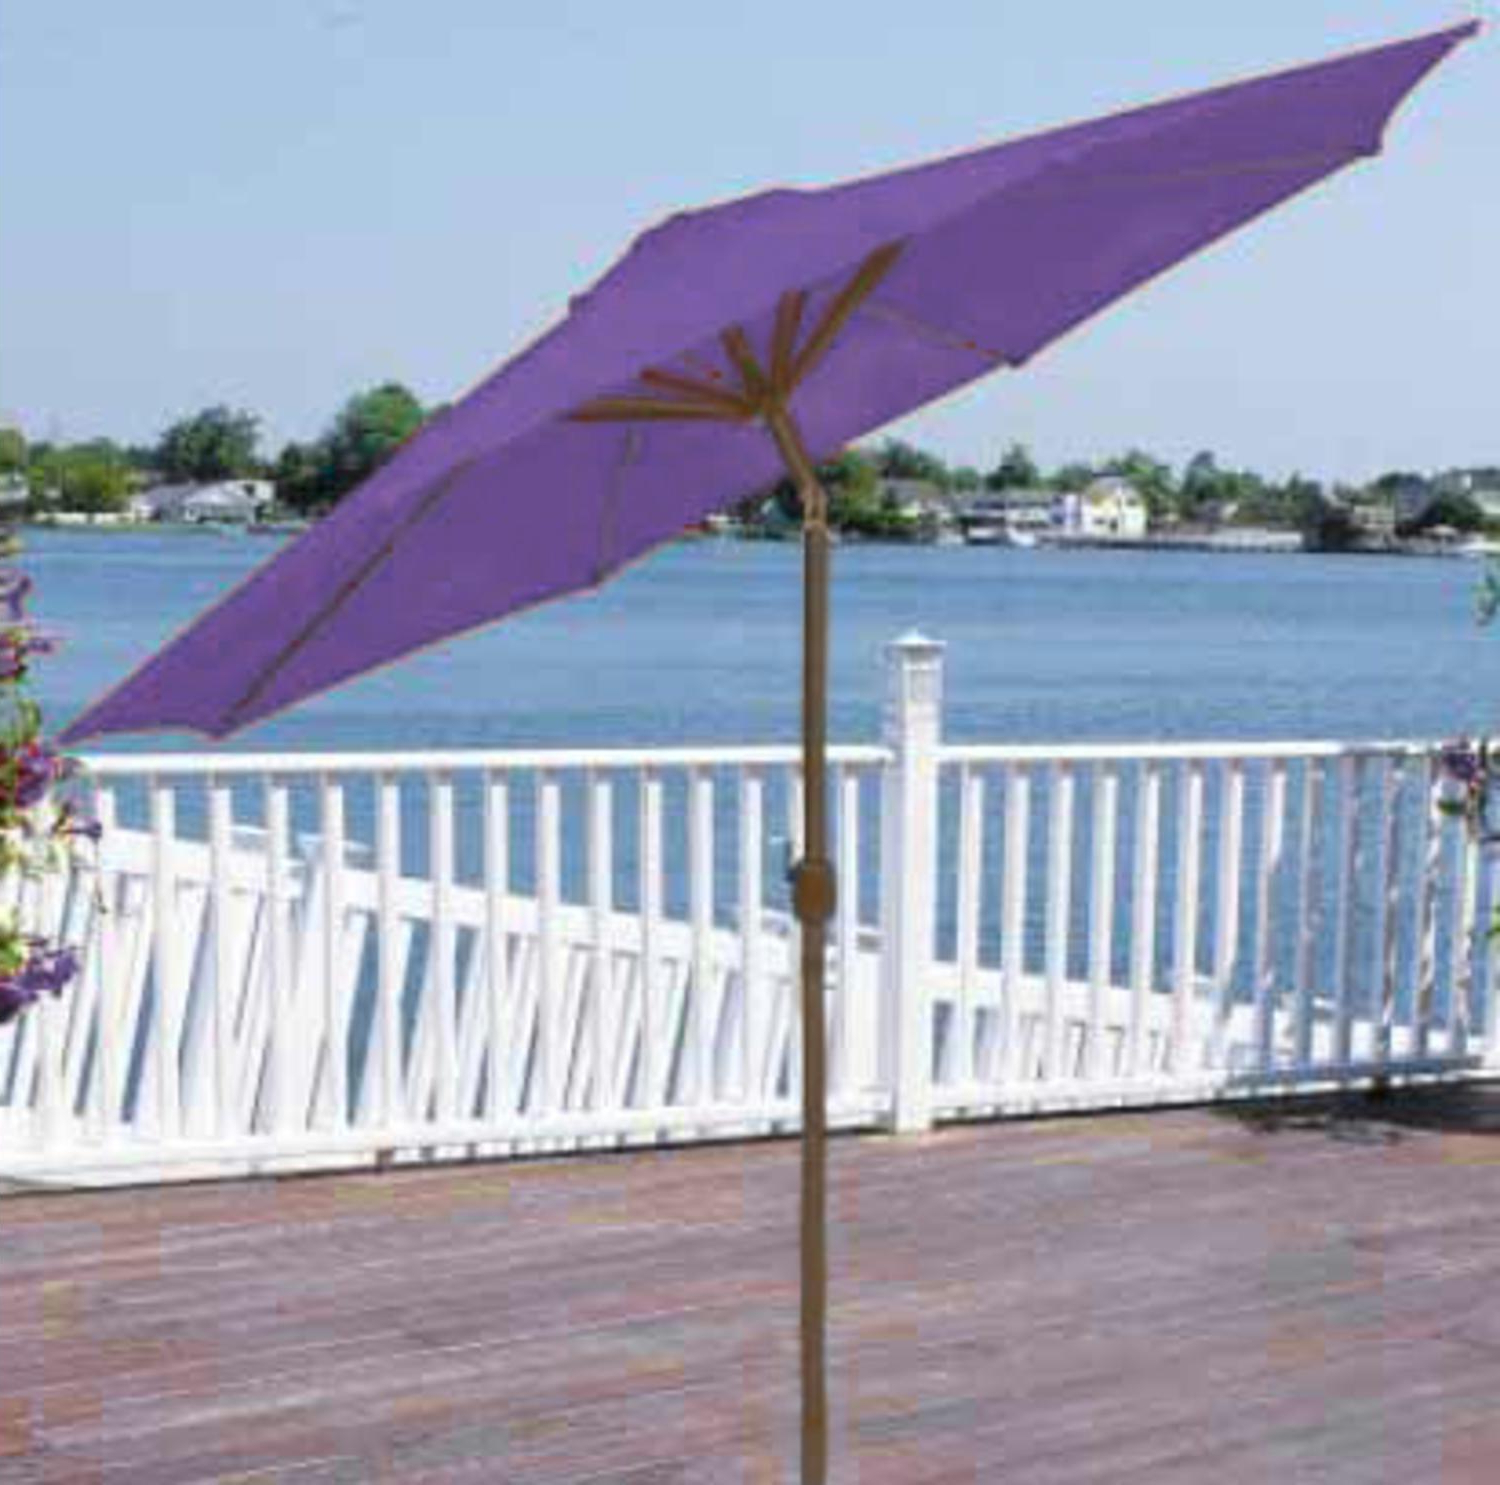 Fordwich Rectangular Cantilever Umbrellas With Widely Used 9' Outdoor Patio Market Umbrella With Hand Crank And Tilt – Purple (View 13 of 20)